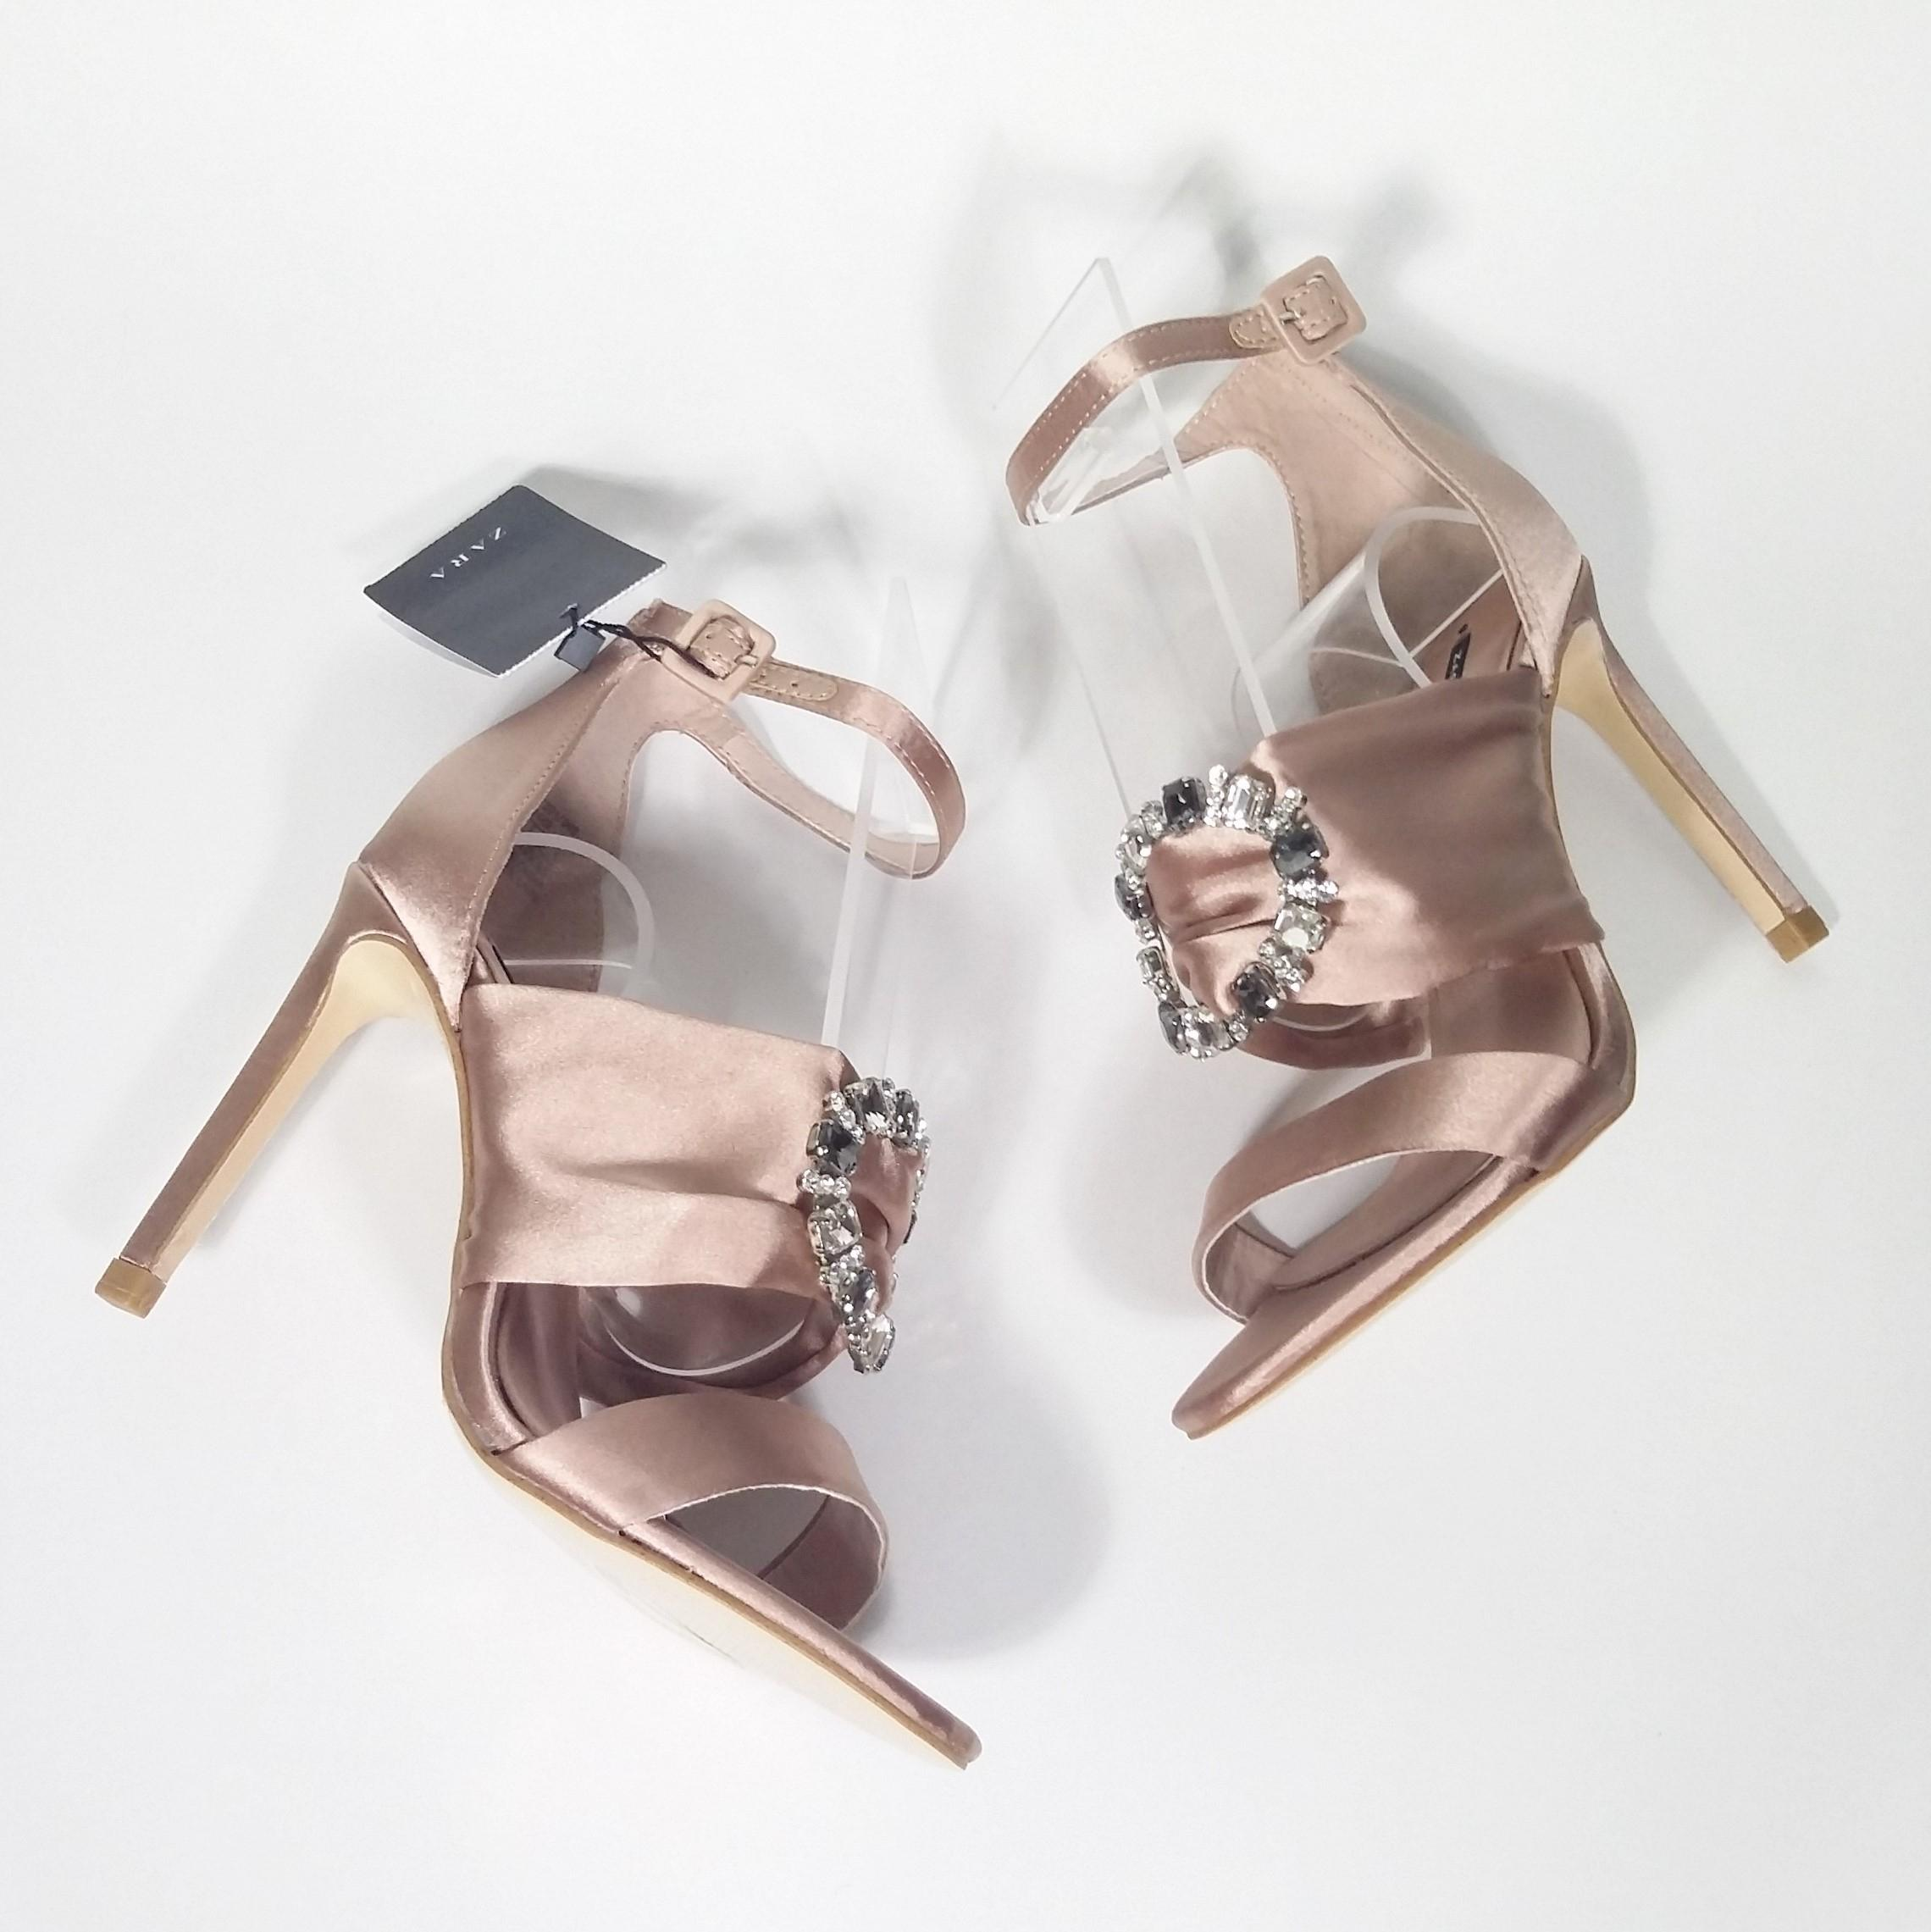 Nouvelles Chaussures Taille Strass Rose Blush Embelli Zara TgPqStHx